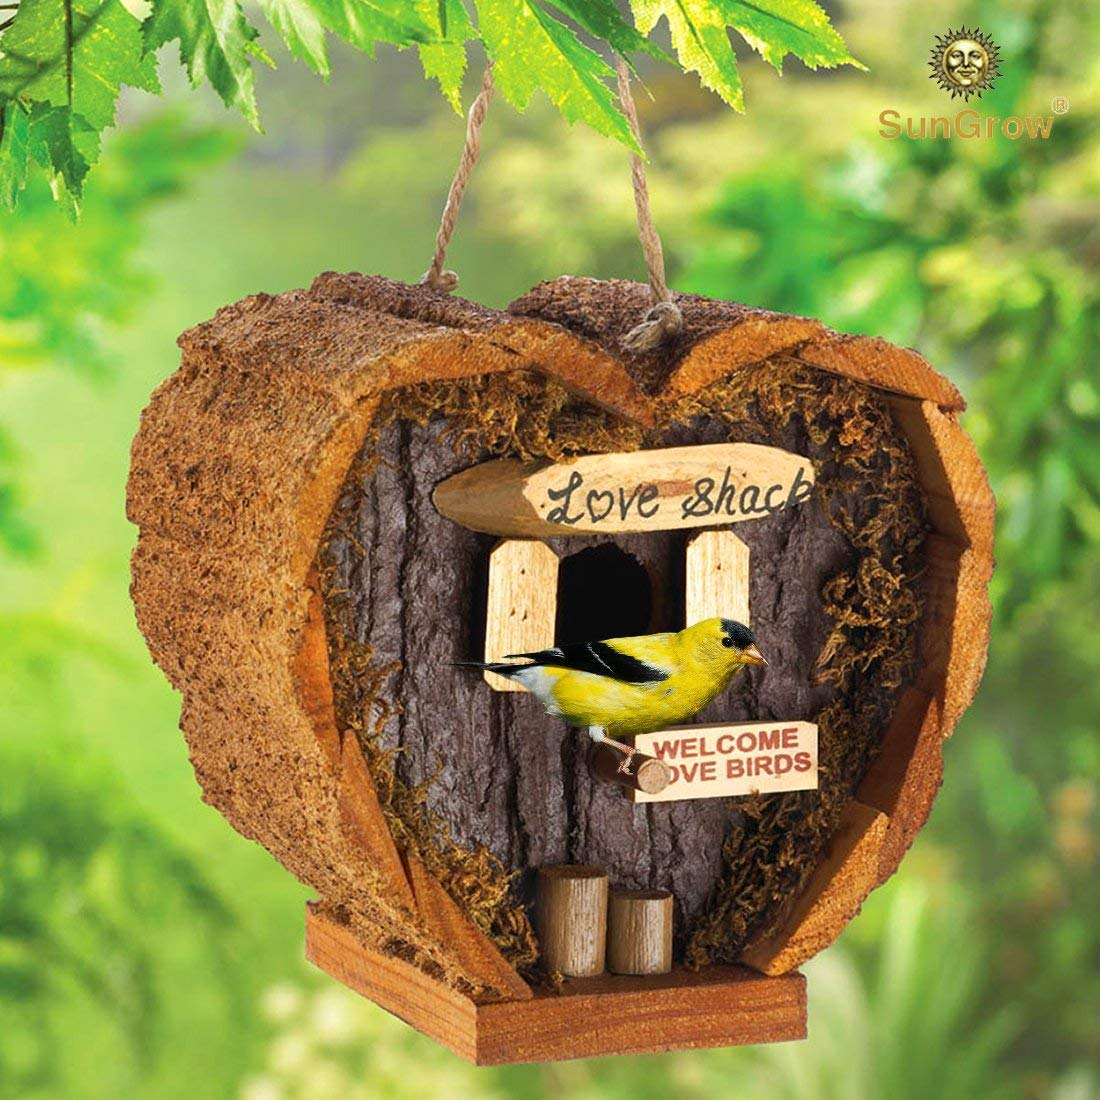 Heart Shaped Birdhouse - Decorative Rough Wood - Little Log Cabin Birdhouse - Perfect Gift for Newlyweds, Engagement , Housewarming , Honeymoon - Love Shack for Love Birds - Wooden Bird Feeder